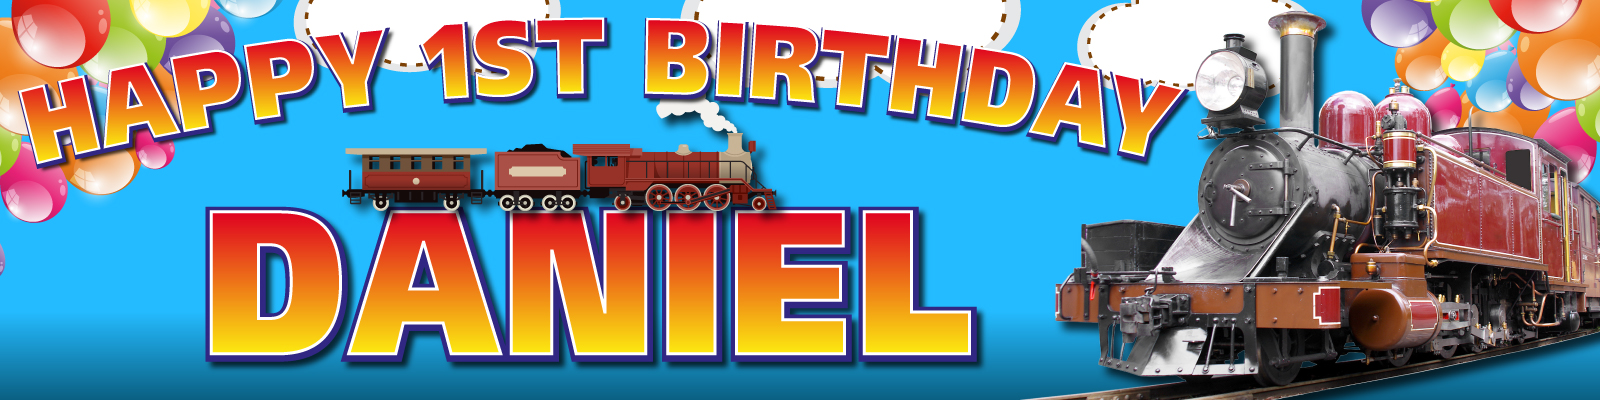 vintage-train-birthday-banner.jpg